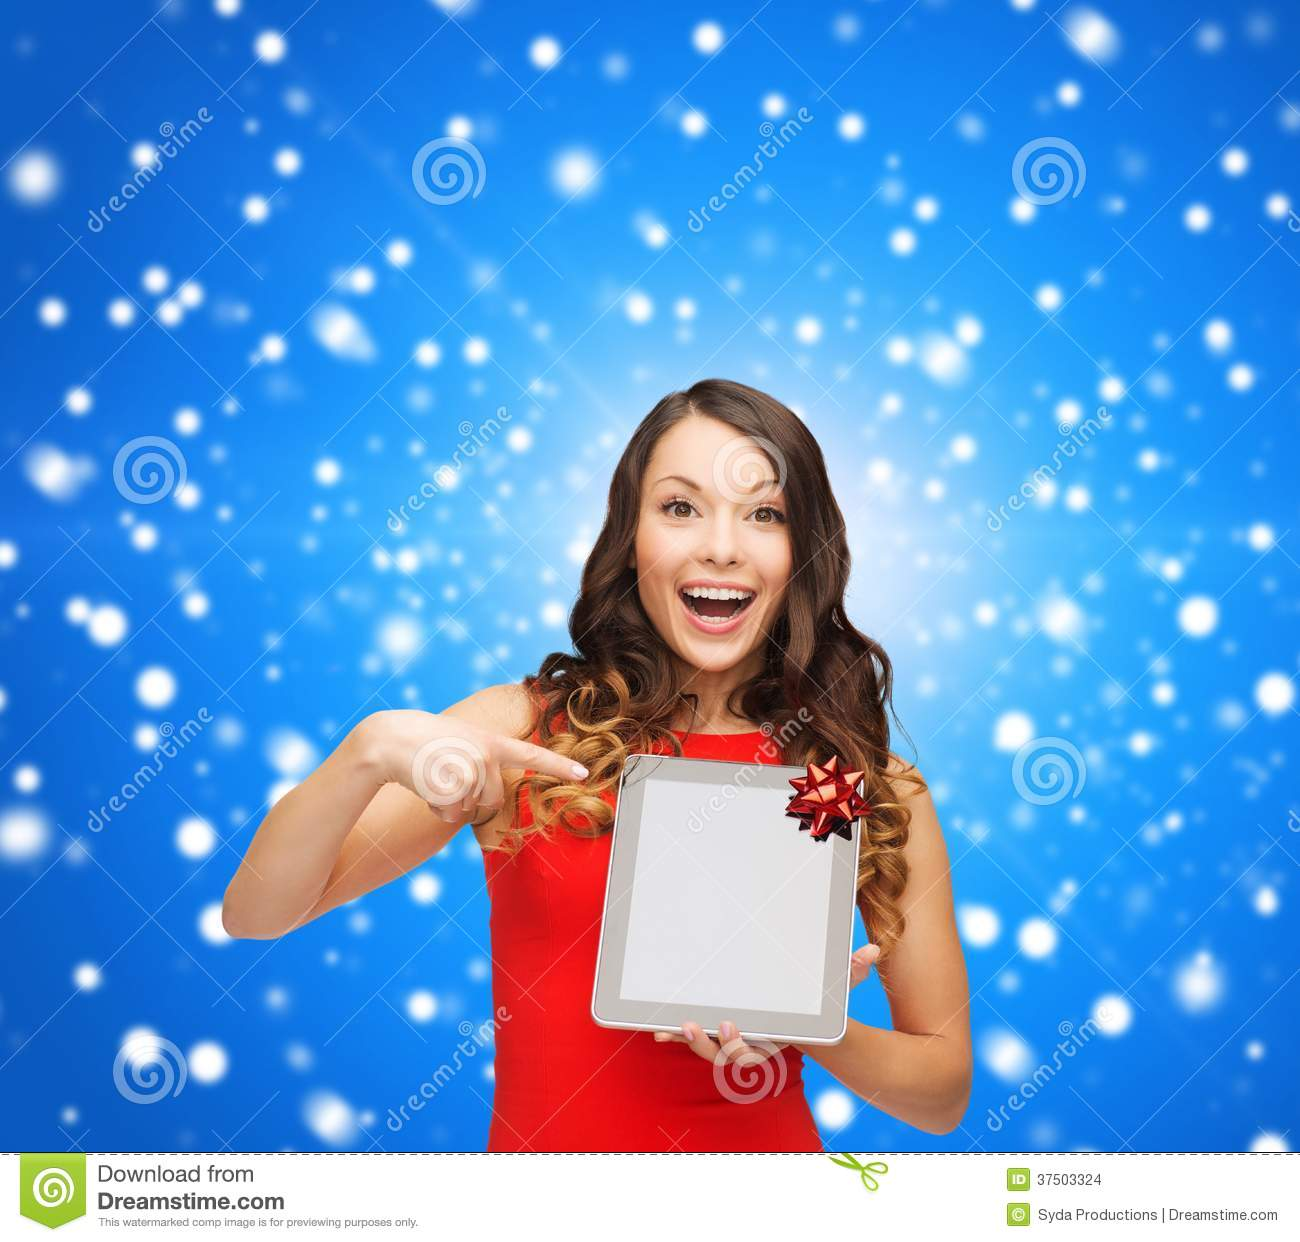 Concept smiling woman in red dress with blank screen tablet pc